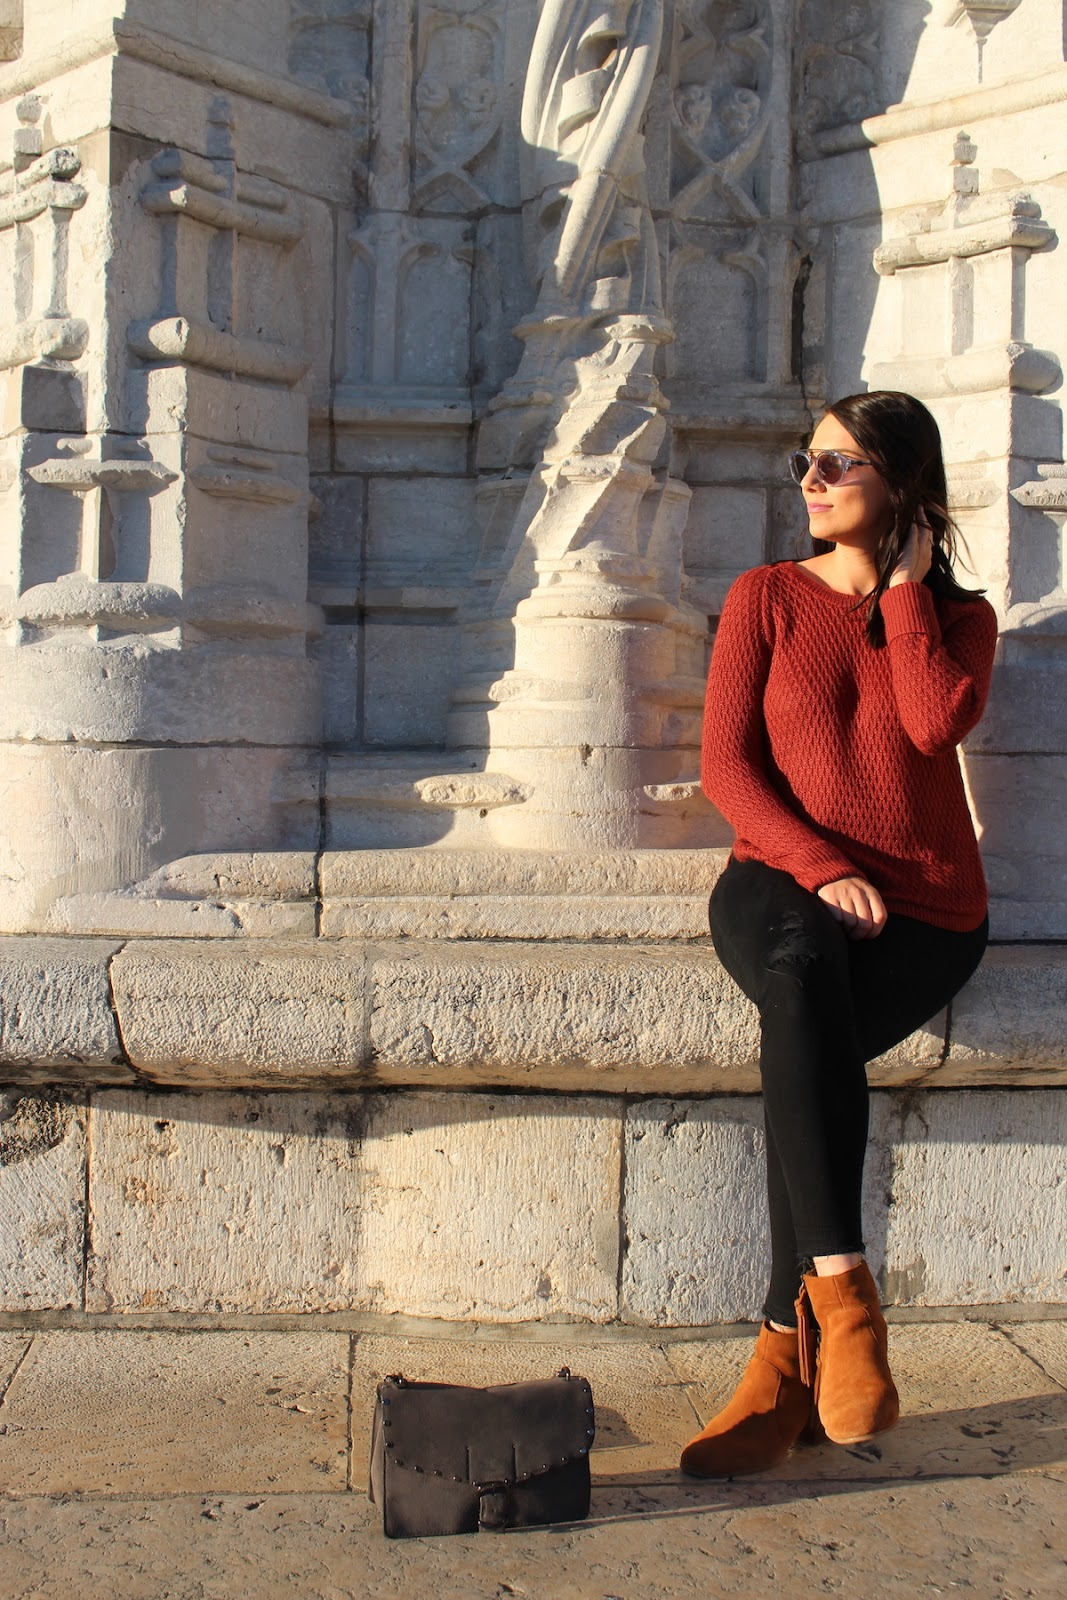 This is a photo of me wearing a red sweater, sitting on the steps of the Lisbon Cathedral.